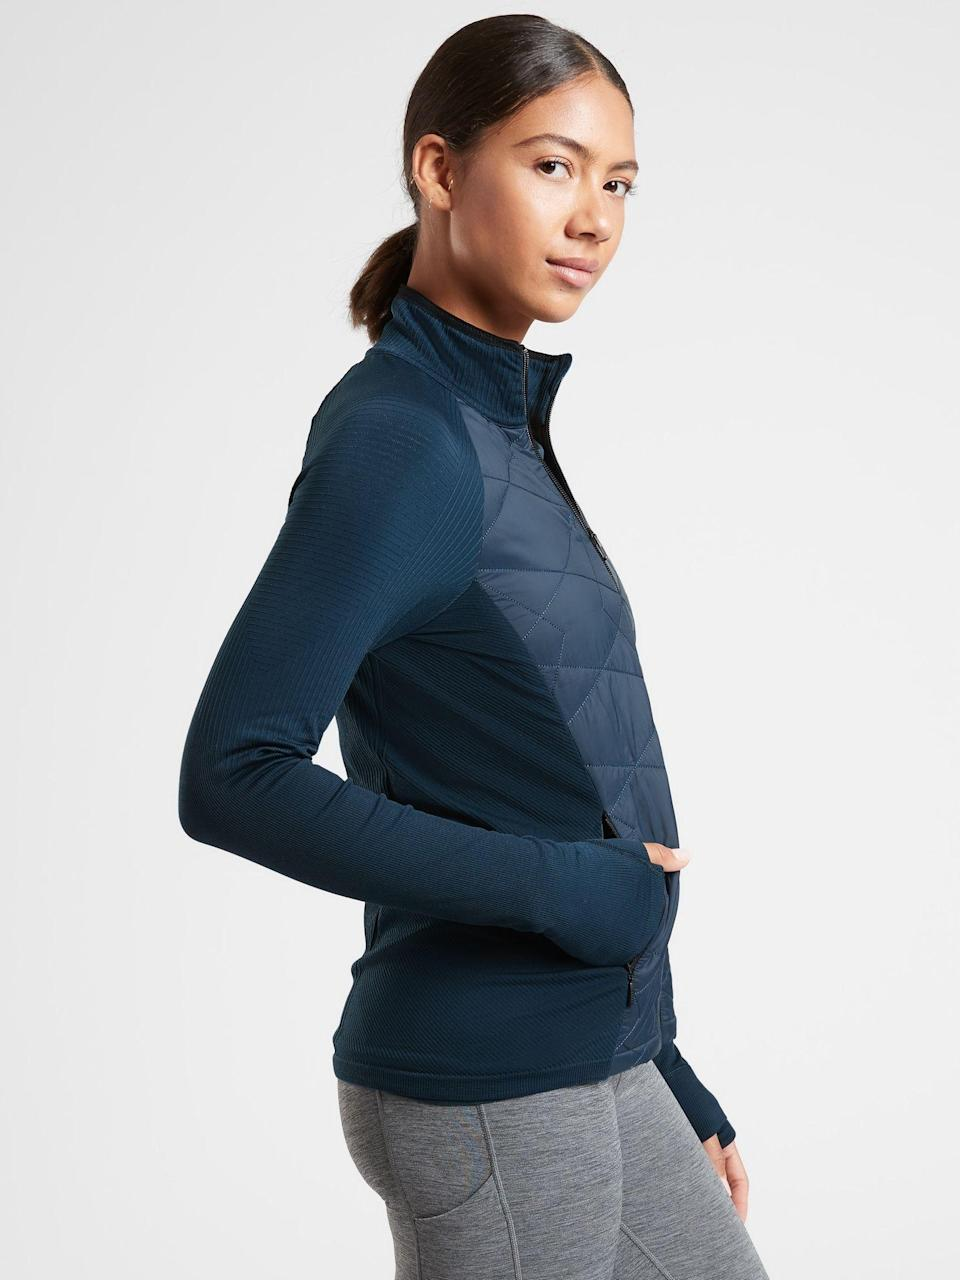 "<p><strong>Athleta</strong></p><p>athleta.gap.com</p><p><strong>$138.00</strong></p><p><a href=""https://go.redirectingat.com?id=74968X1596630&url=https%3A%2F%2Fathleta.gap.com%2Fbrowse%2Fproduct.do%3Fpid%3D499333002%26cid%3D1017102%26pcid%3D1017102%26vid%3D1%26grid%3Dpds_21_78_1%26cpos%3D21%26cexp%3D1501%26kcid%3DCategoryIDs%253D1017102%26cvar%3D11273%26ctype%3DListing%26cpid%3Dres2011250612630504561881%26irgwc%3D1%26clickid%3D37pSn3wndxyJU800MSU5wRc5UkEwh-31WwujwE0%26ap%3D6%26tid%3Dataff3640647%26siteID%3Datafcid383280%23pdp-page-content&sref=https%3A%2F%2Fwww.townandcountrymag.com%2Fstyle%2Fg34762599%2Fbest-fitness-gifts%2F"" rel=""nofollow noopener"" target=""_blank"" data-ylk=""slk:Shop Now"" class=""link rapid-noclick-resp"">Shop Now</a></p>"